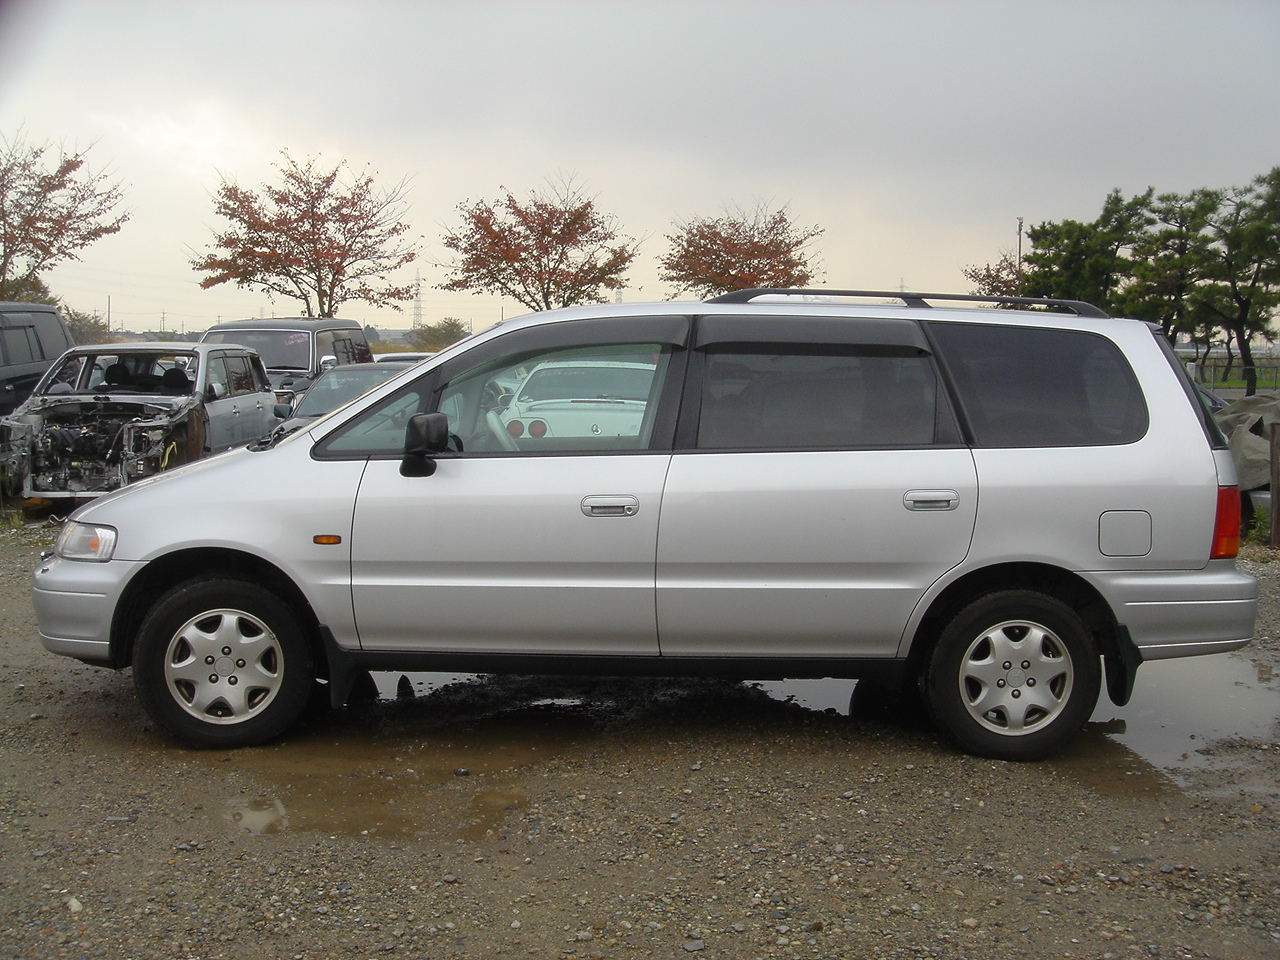 Honda Odyssey L, 1996, used for sale